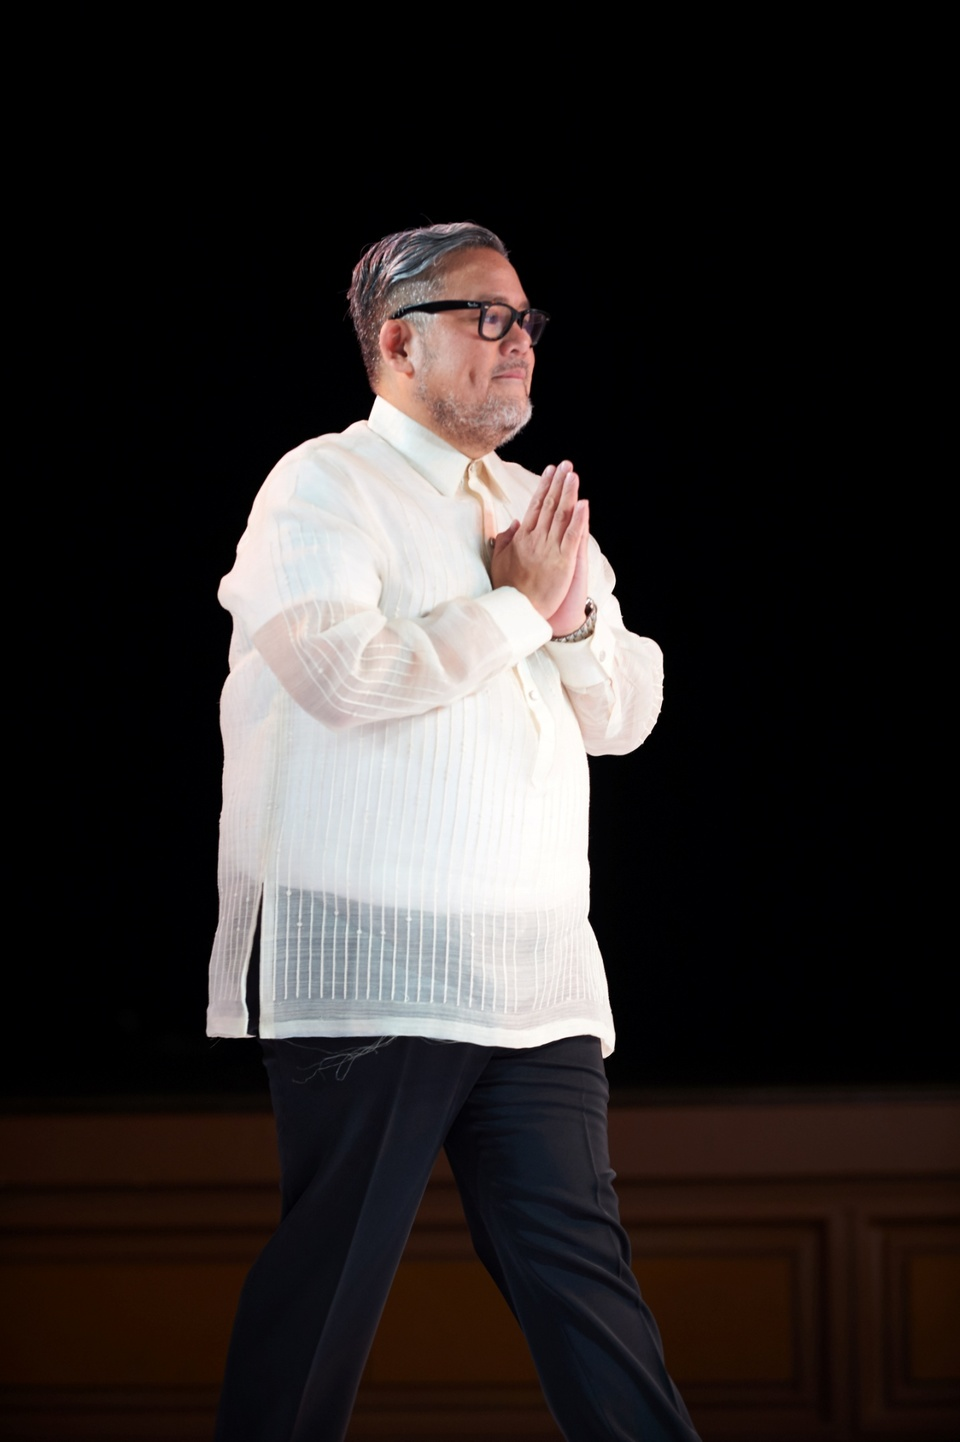 Rajo Laurel held his first ever Independence Day Fashion Show in Tokyo featuring some of his best collections – Pintados, Black, White, Nude and Hanami.